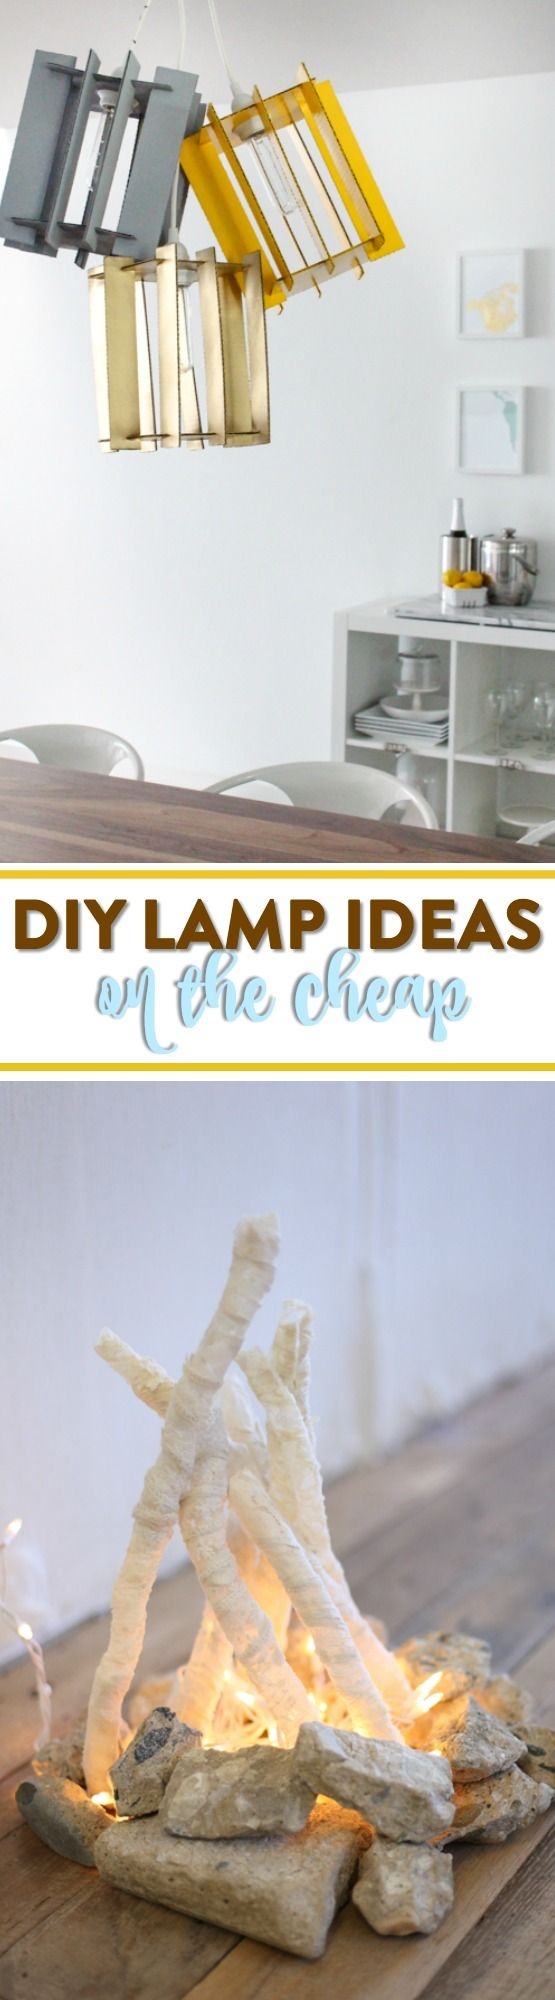 Us teens usually don't have that much money anyway, so it's great when we get creative on a lazy afternoon and end up making something incredible. I hope you enjoy these greatDIY Lamp Ideas for Teen Bedrooms!